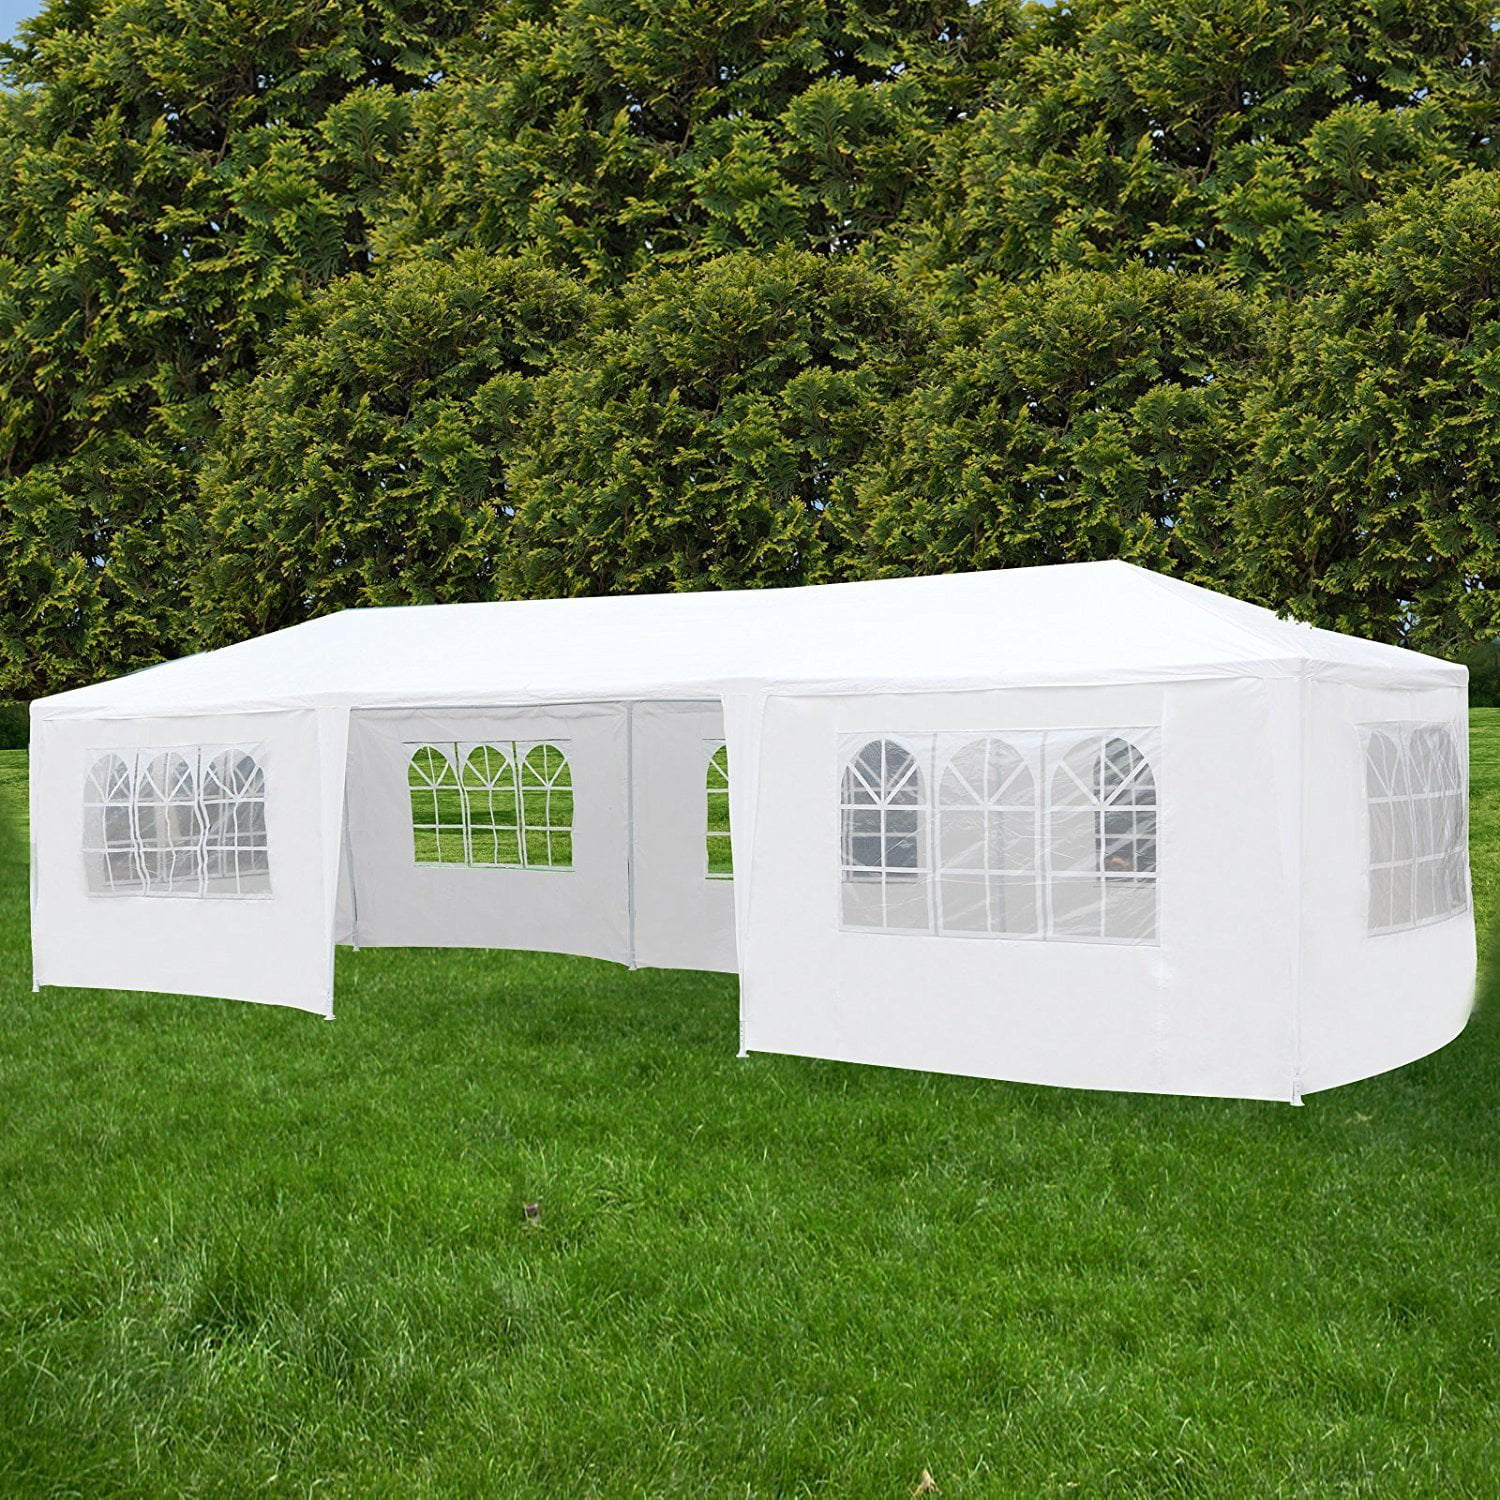 Ktaxon 10' X 30' Canopy Tent with 7 Side Walls for Party Wedding Camping and BBQ by Ktaxon